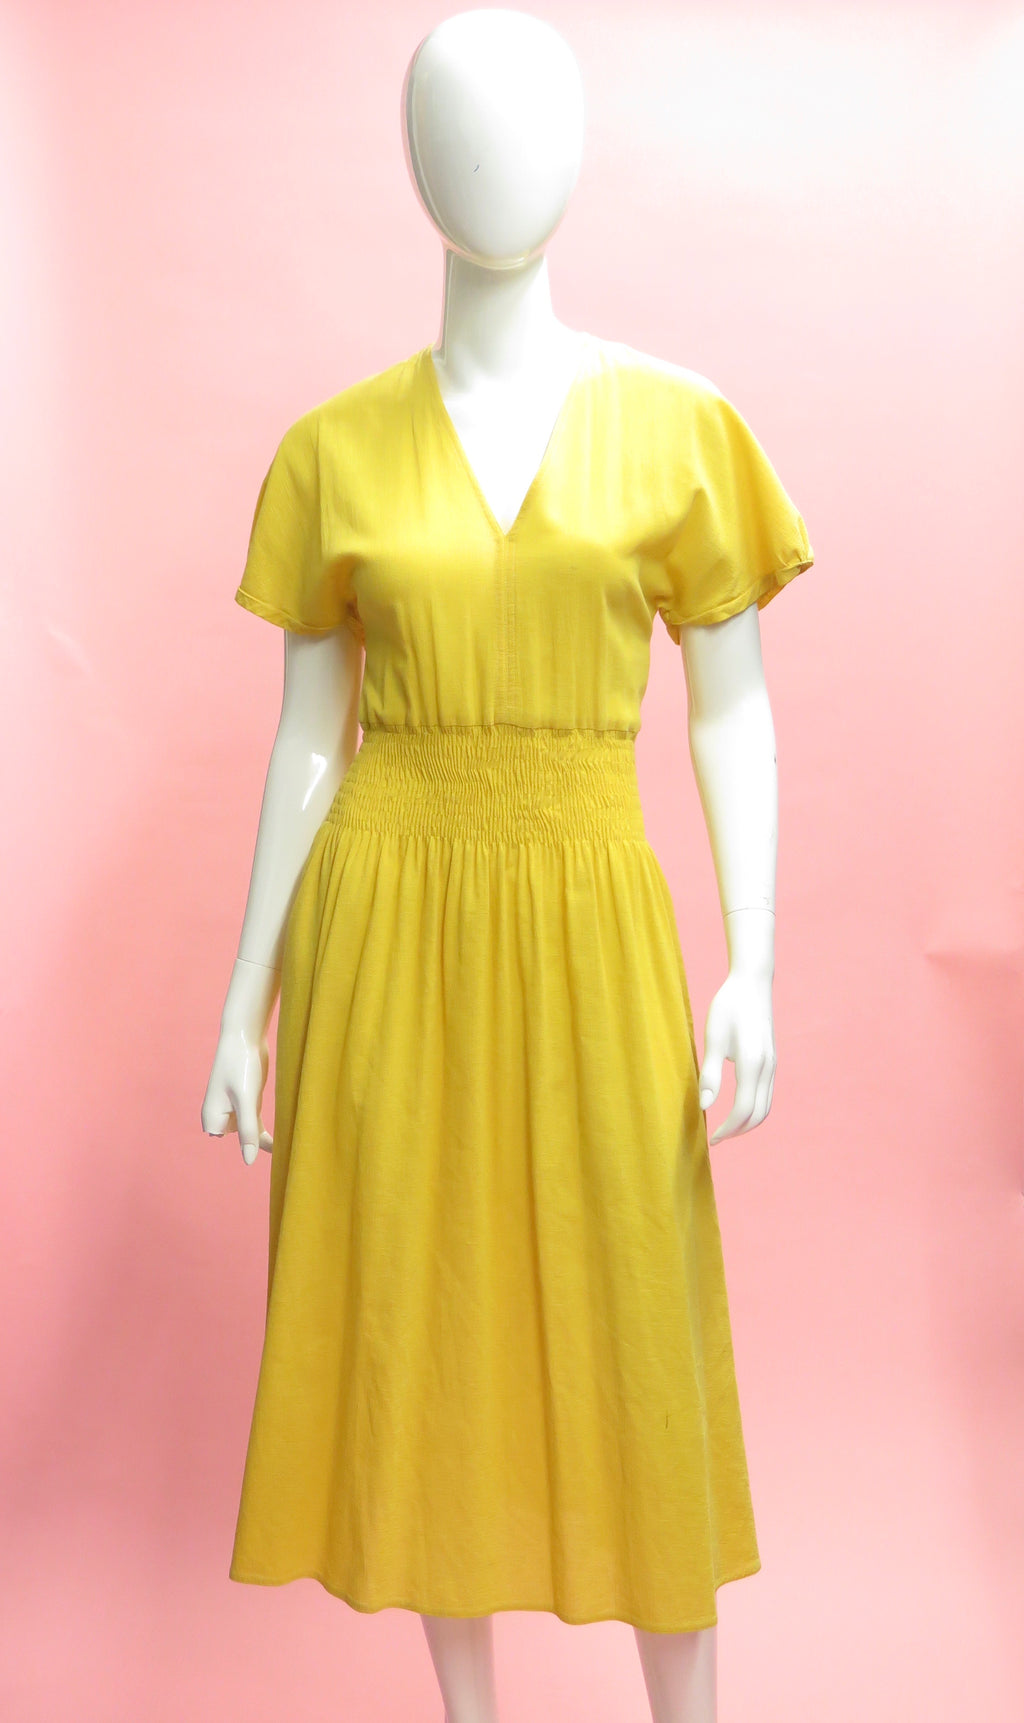 1990's Sonia Rykiel Smocked Cotton Sun Dress